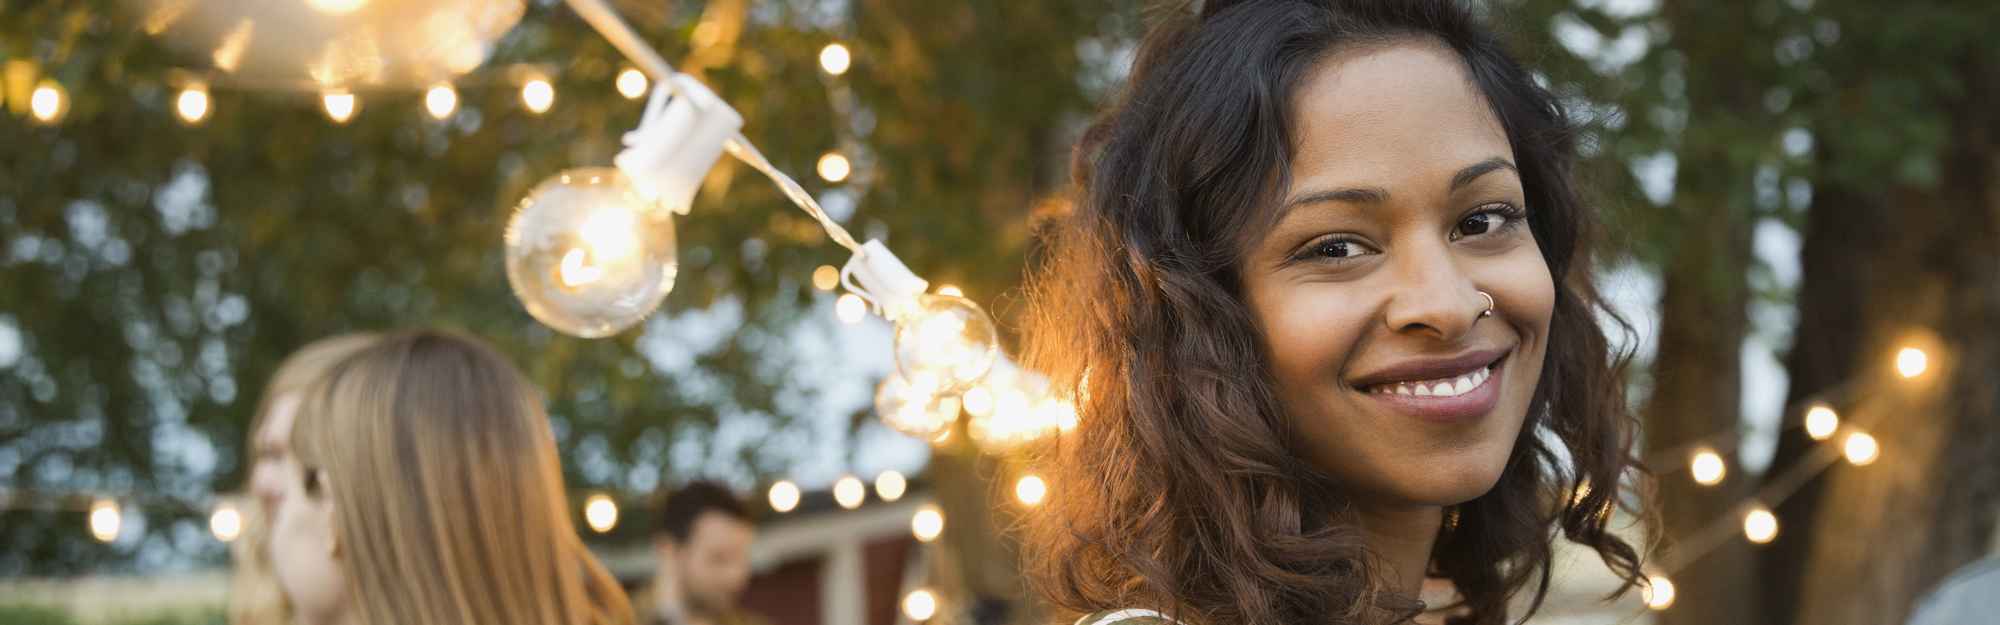 Smiling woman at an outdoor party